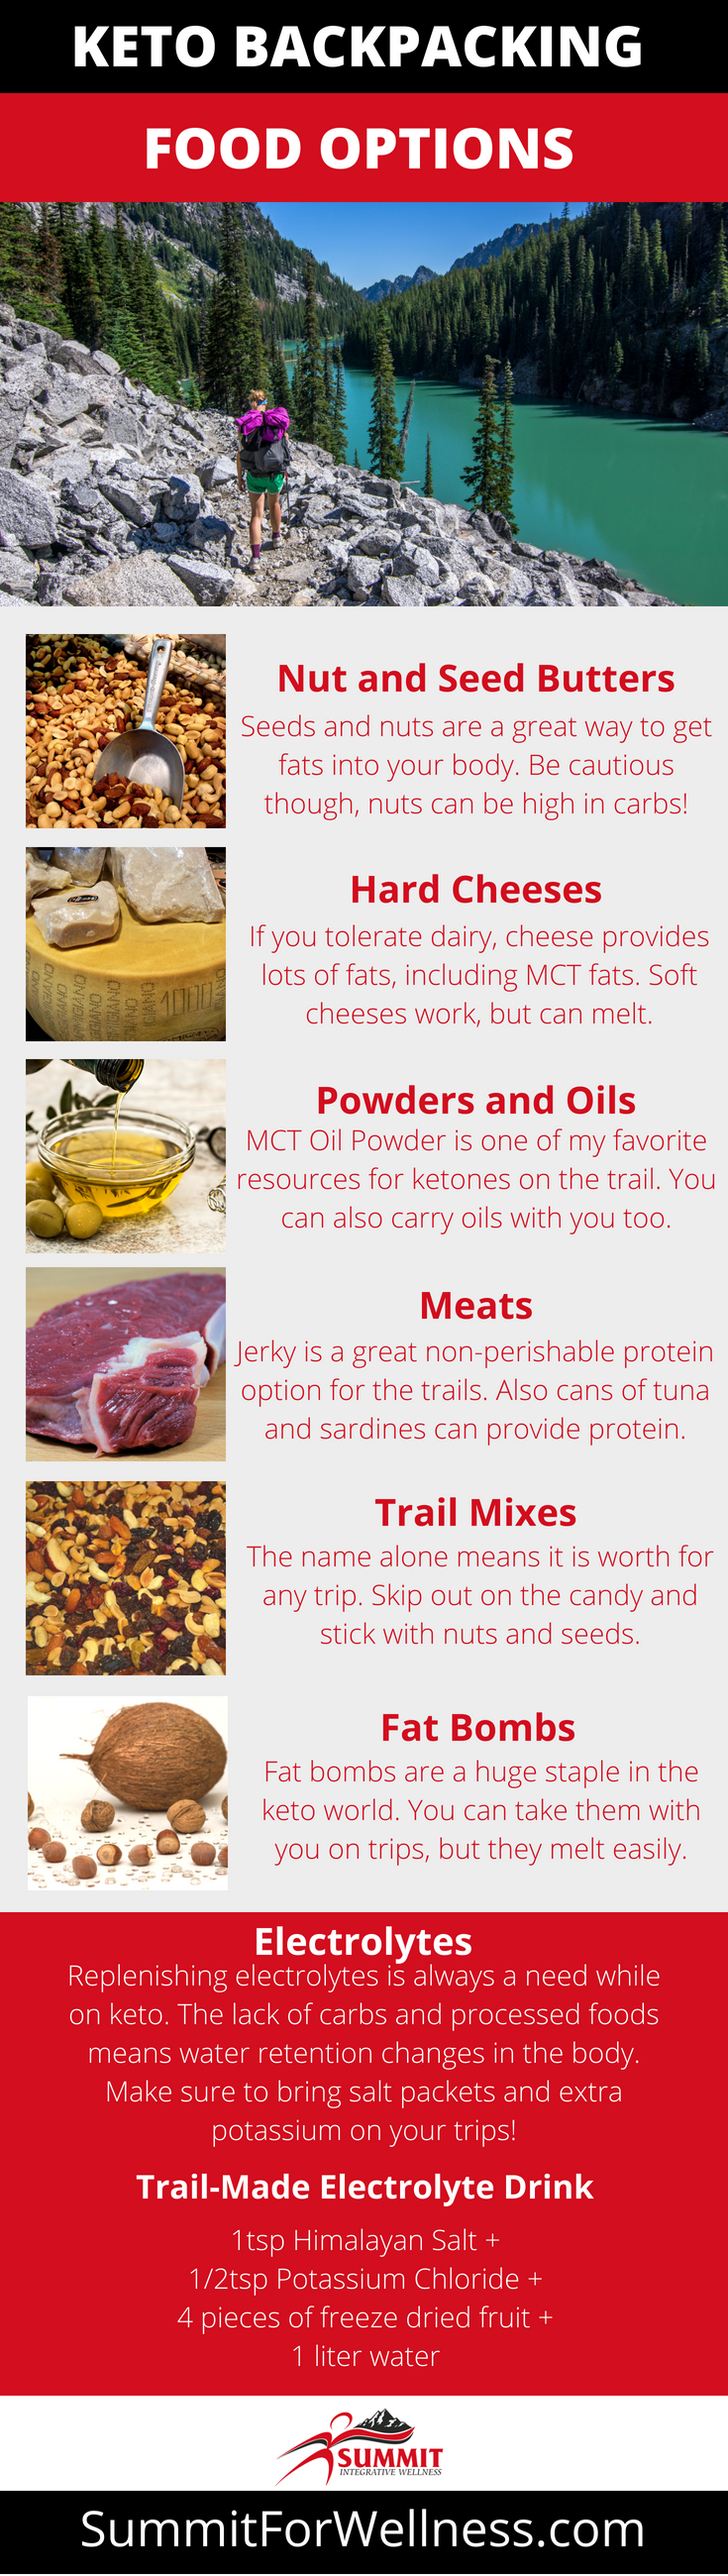 These easy and simple options are great for keto backpacking food and meals!